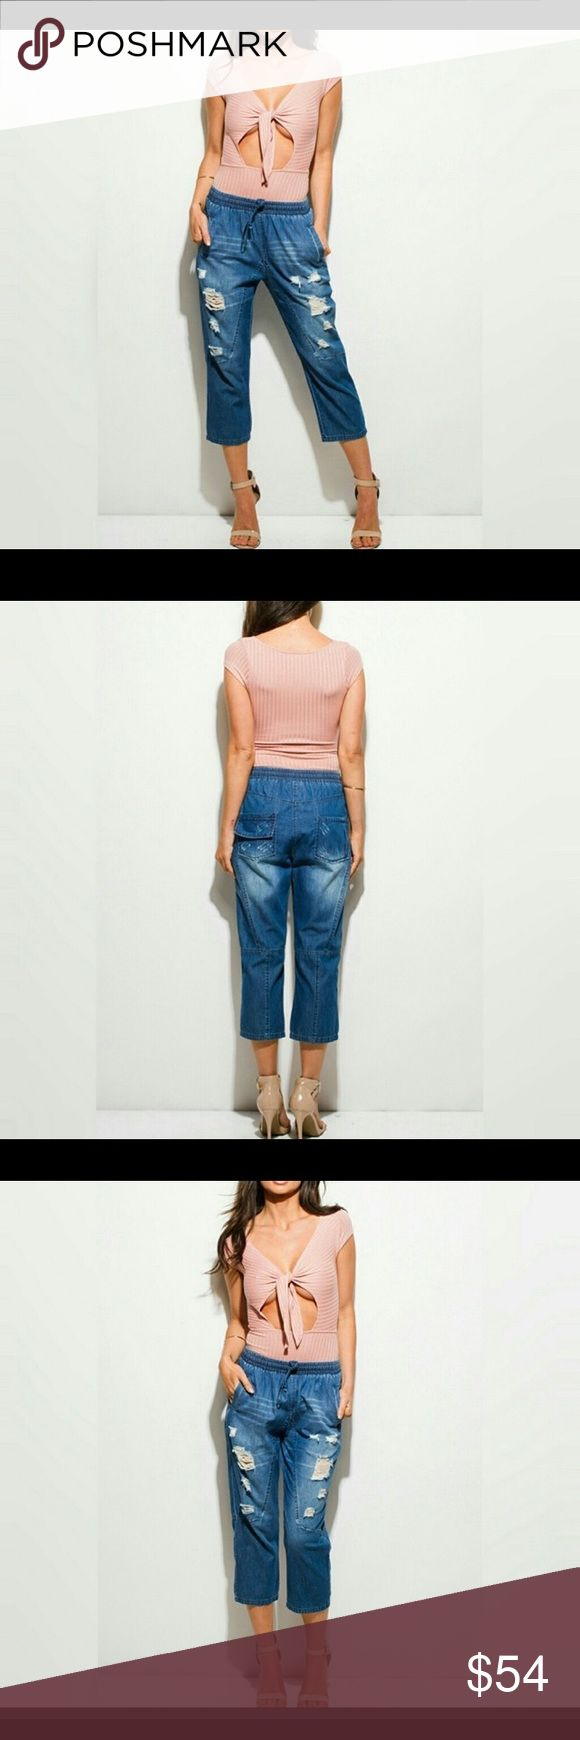 Distressed Cropped Joggers Medium wash 100% cotton light weight denim cropped jeans, elasticized drawstring waist, diagonal pockets, loose fit, factory distressing, runs on the smaller side Jeans Ankle & Cropped